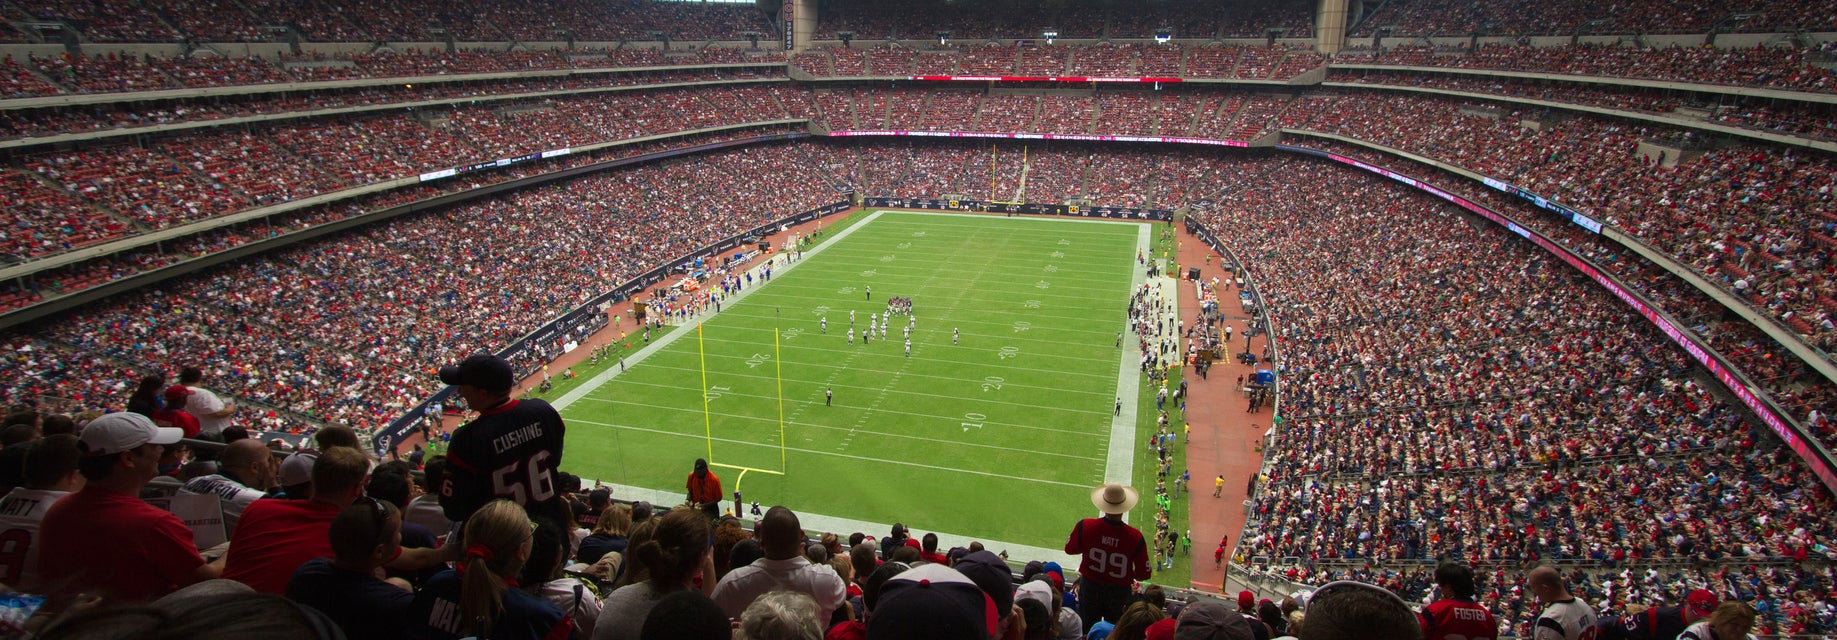 Seat view from Gridiron Loge